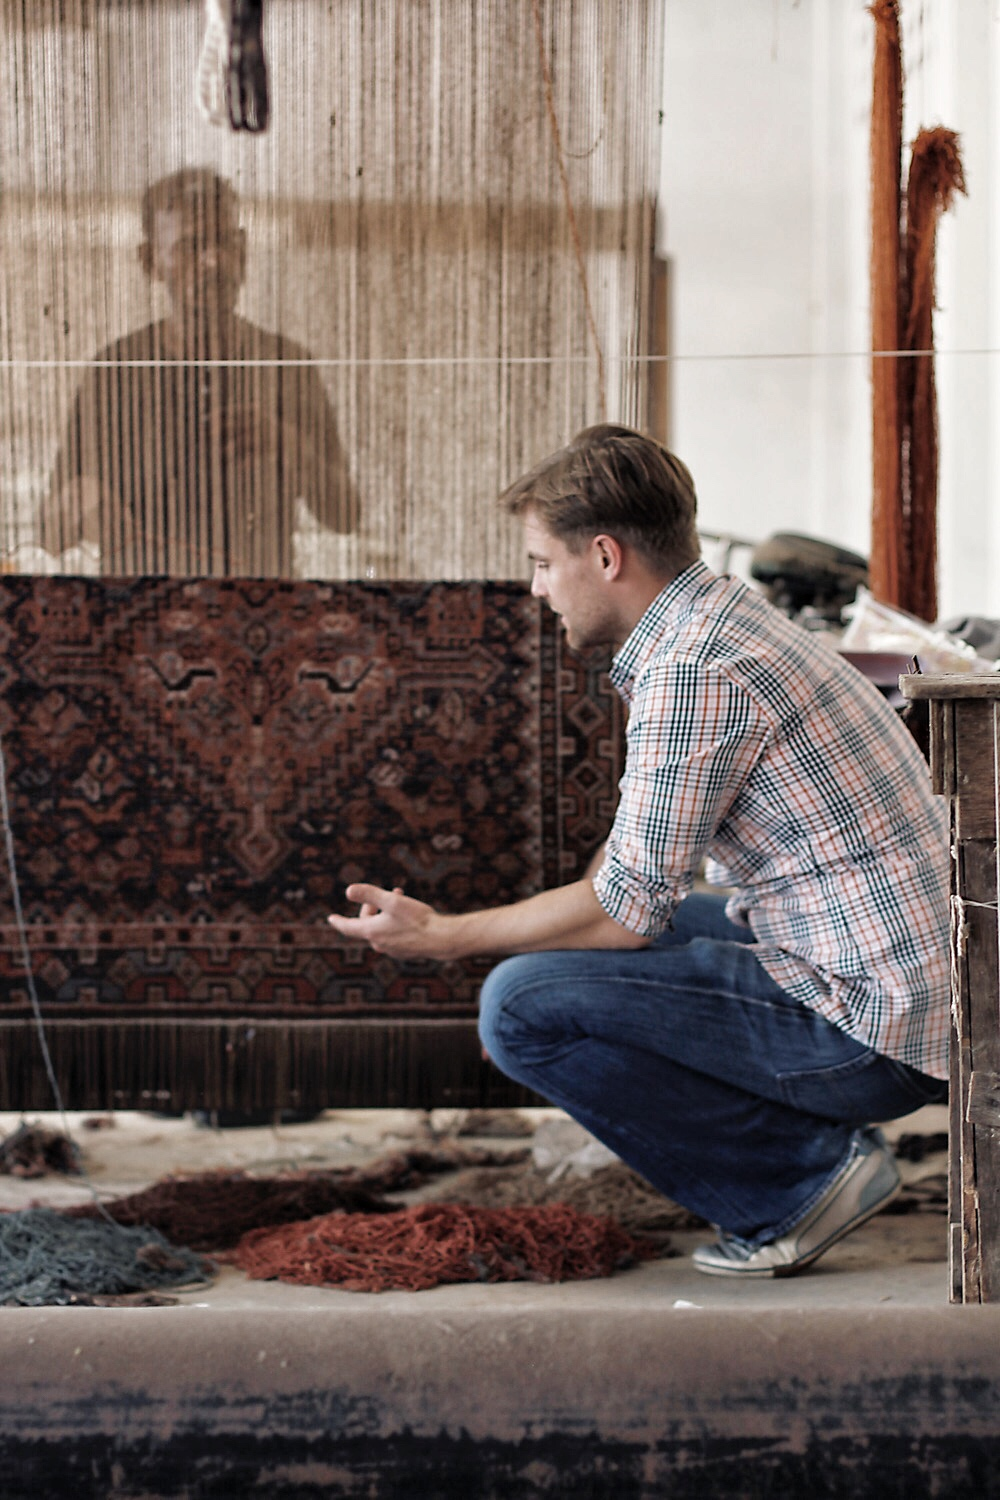 Alex Rees (Rugs of Petworth owner) in Bhadohi India.